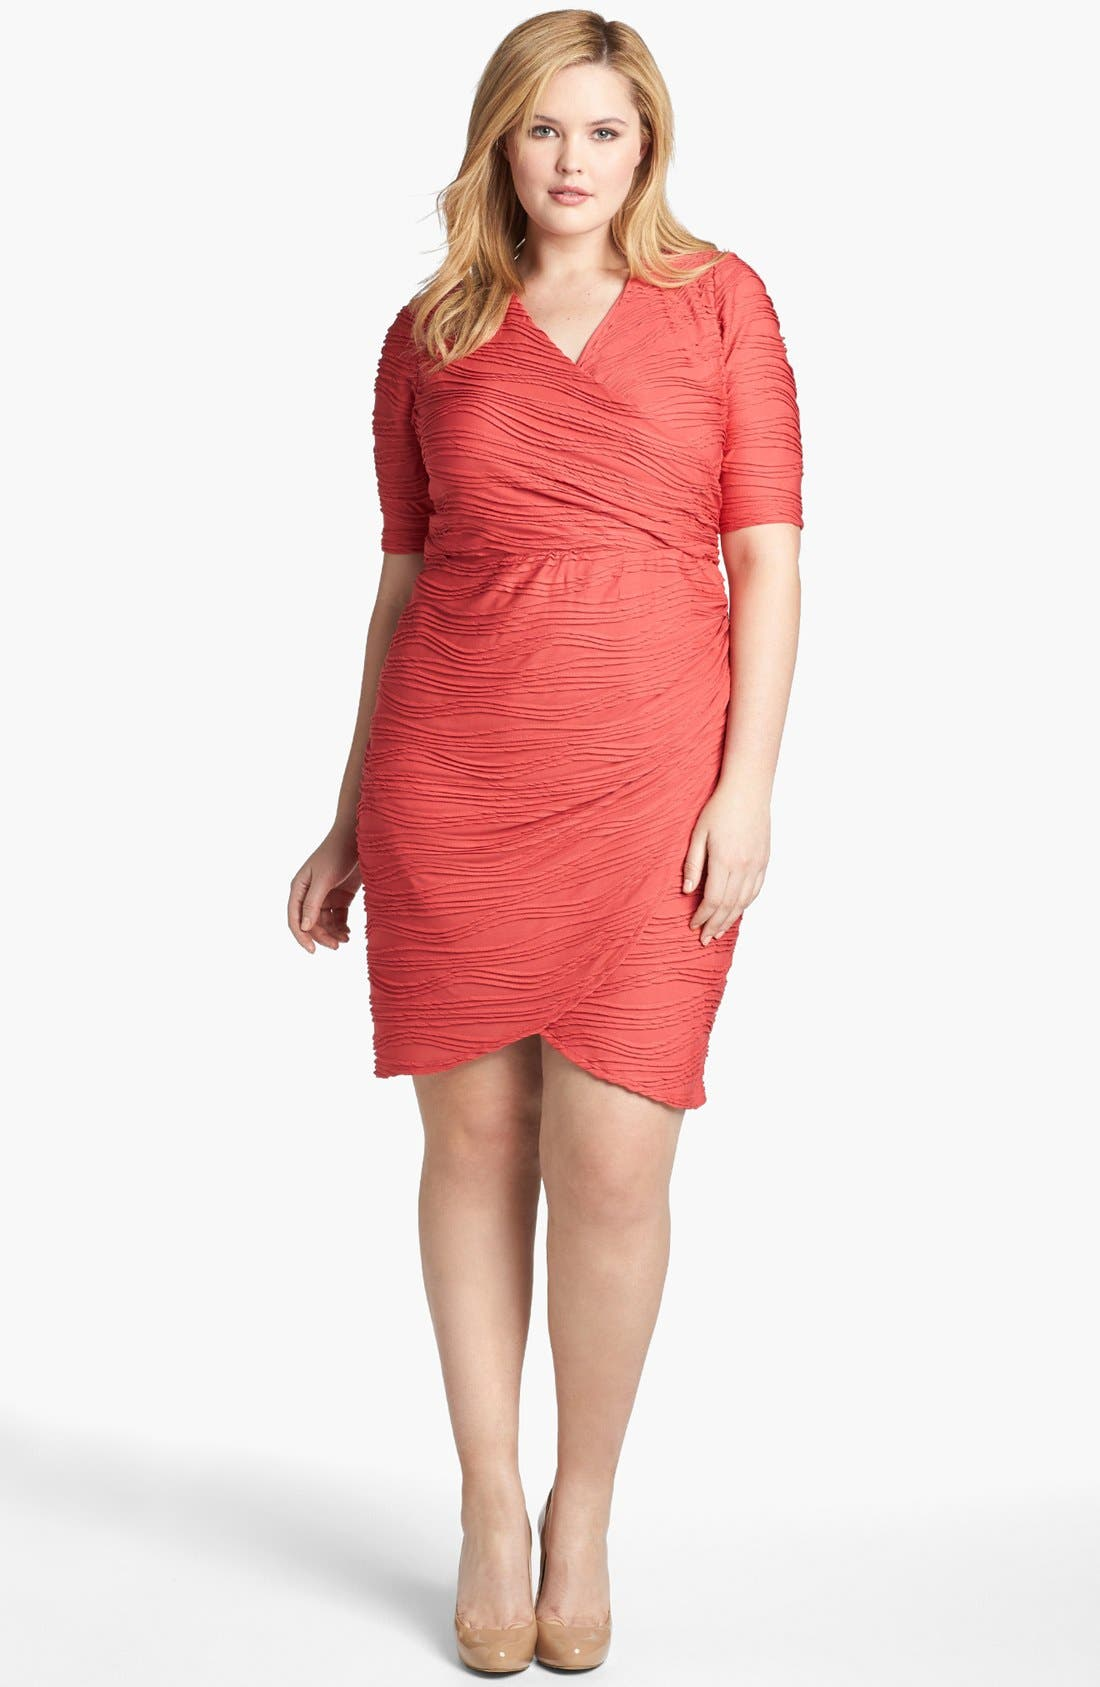 Alternate Image 1 Selected - London Times Textured Short Sleeve Sheath Dress (Plus Size)